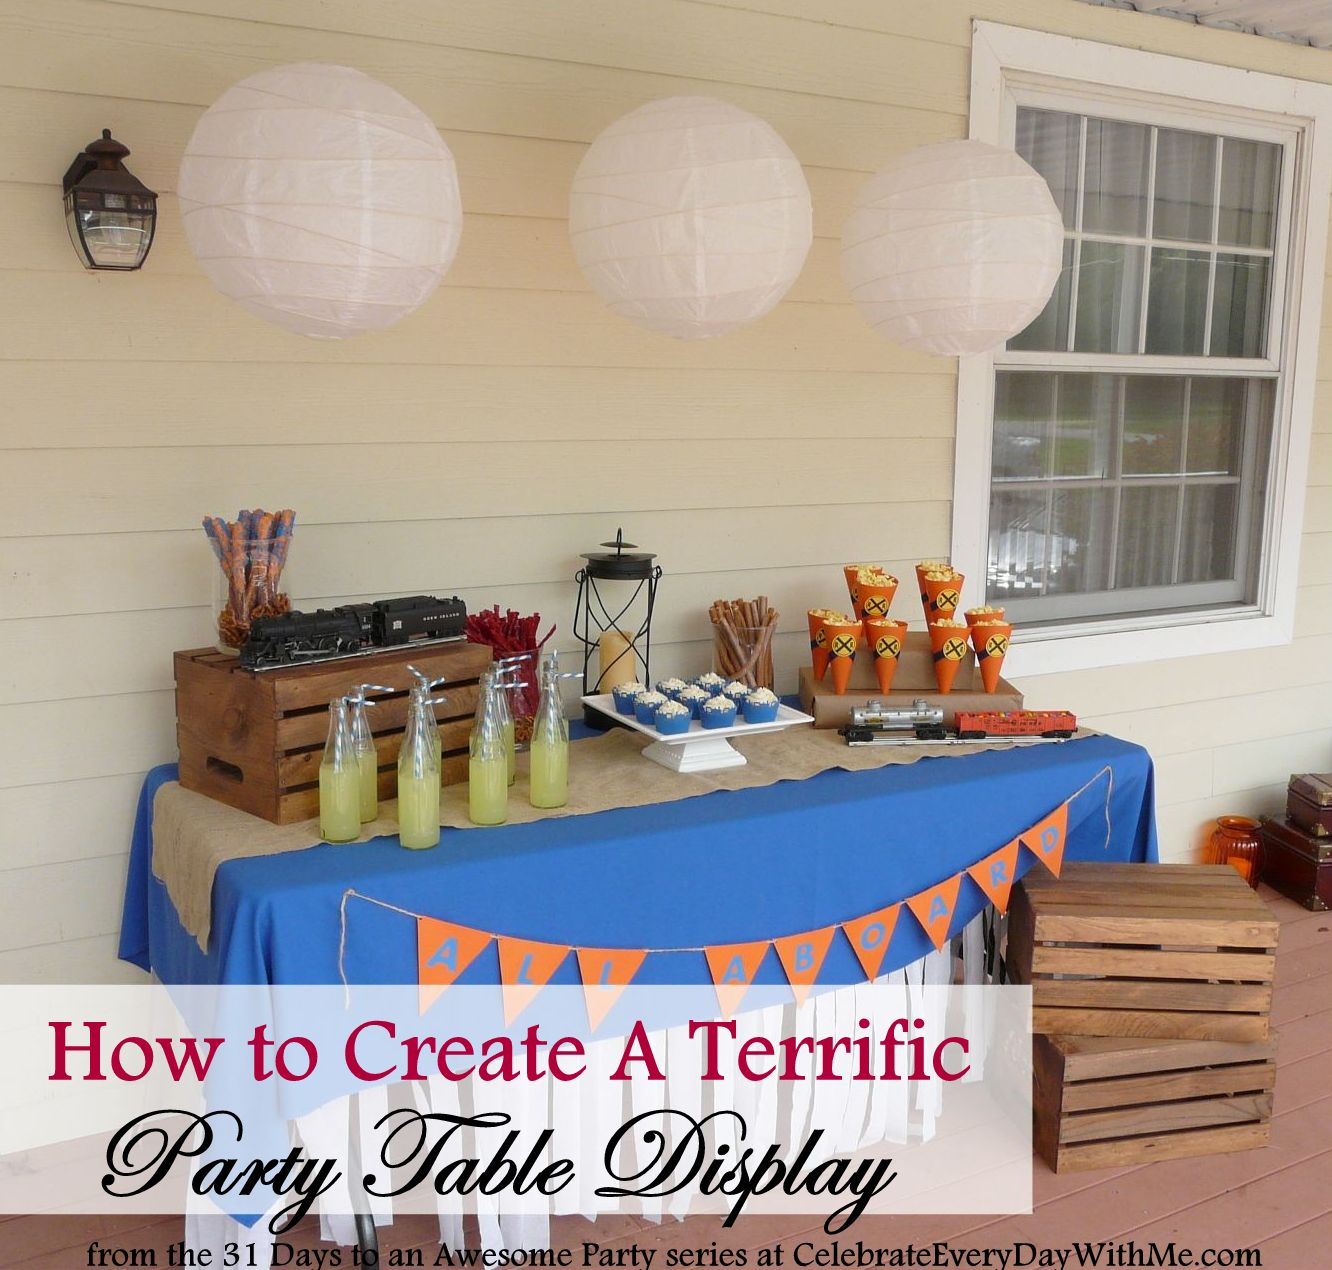 Birthday Table Presentation: 31 Days To An Awesome Party: A Terrific Party Table